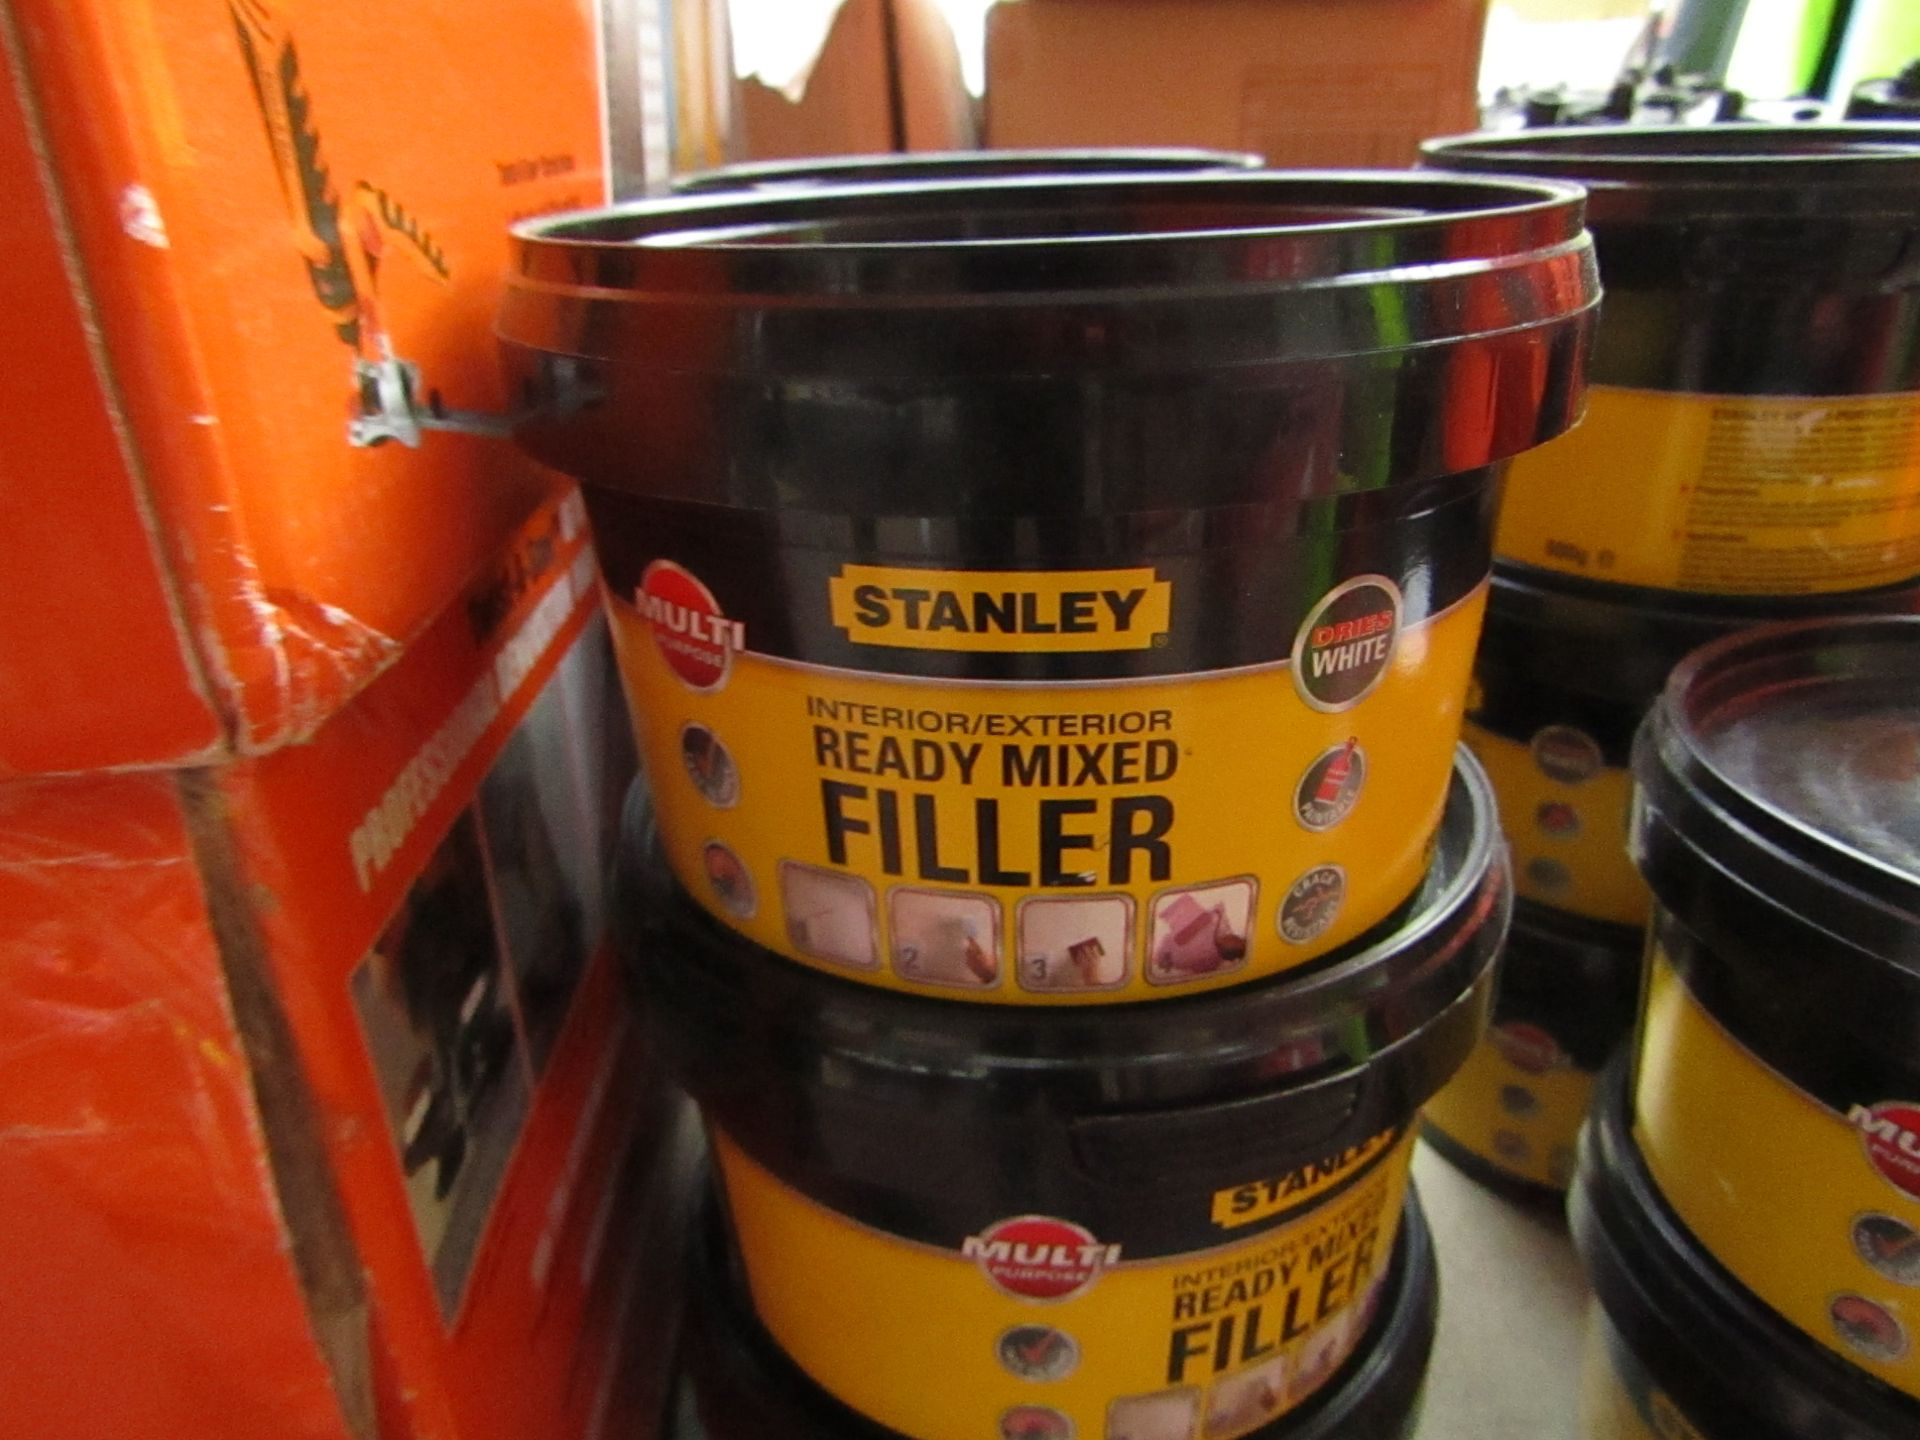 Lot 56 - 6x 600g tubs of Stanley Multi Purpose ready Mixed Interor and Exterior filler, new